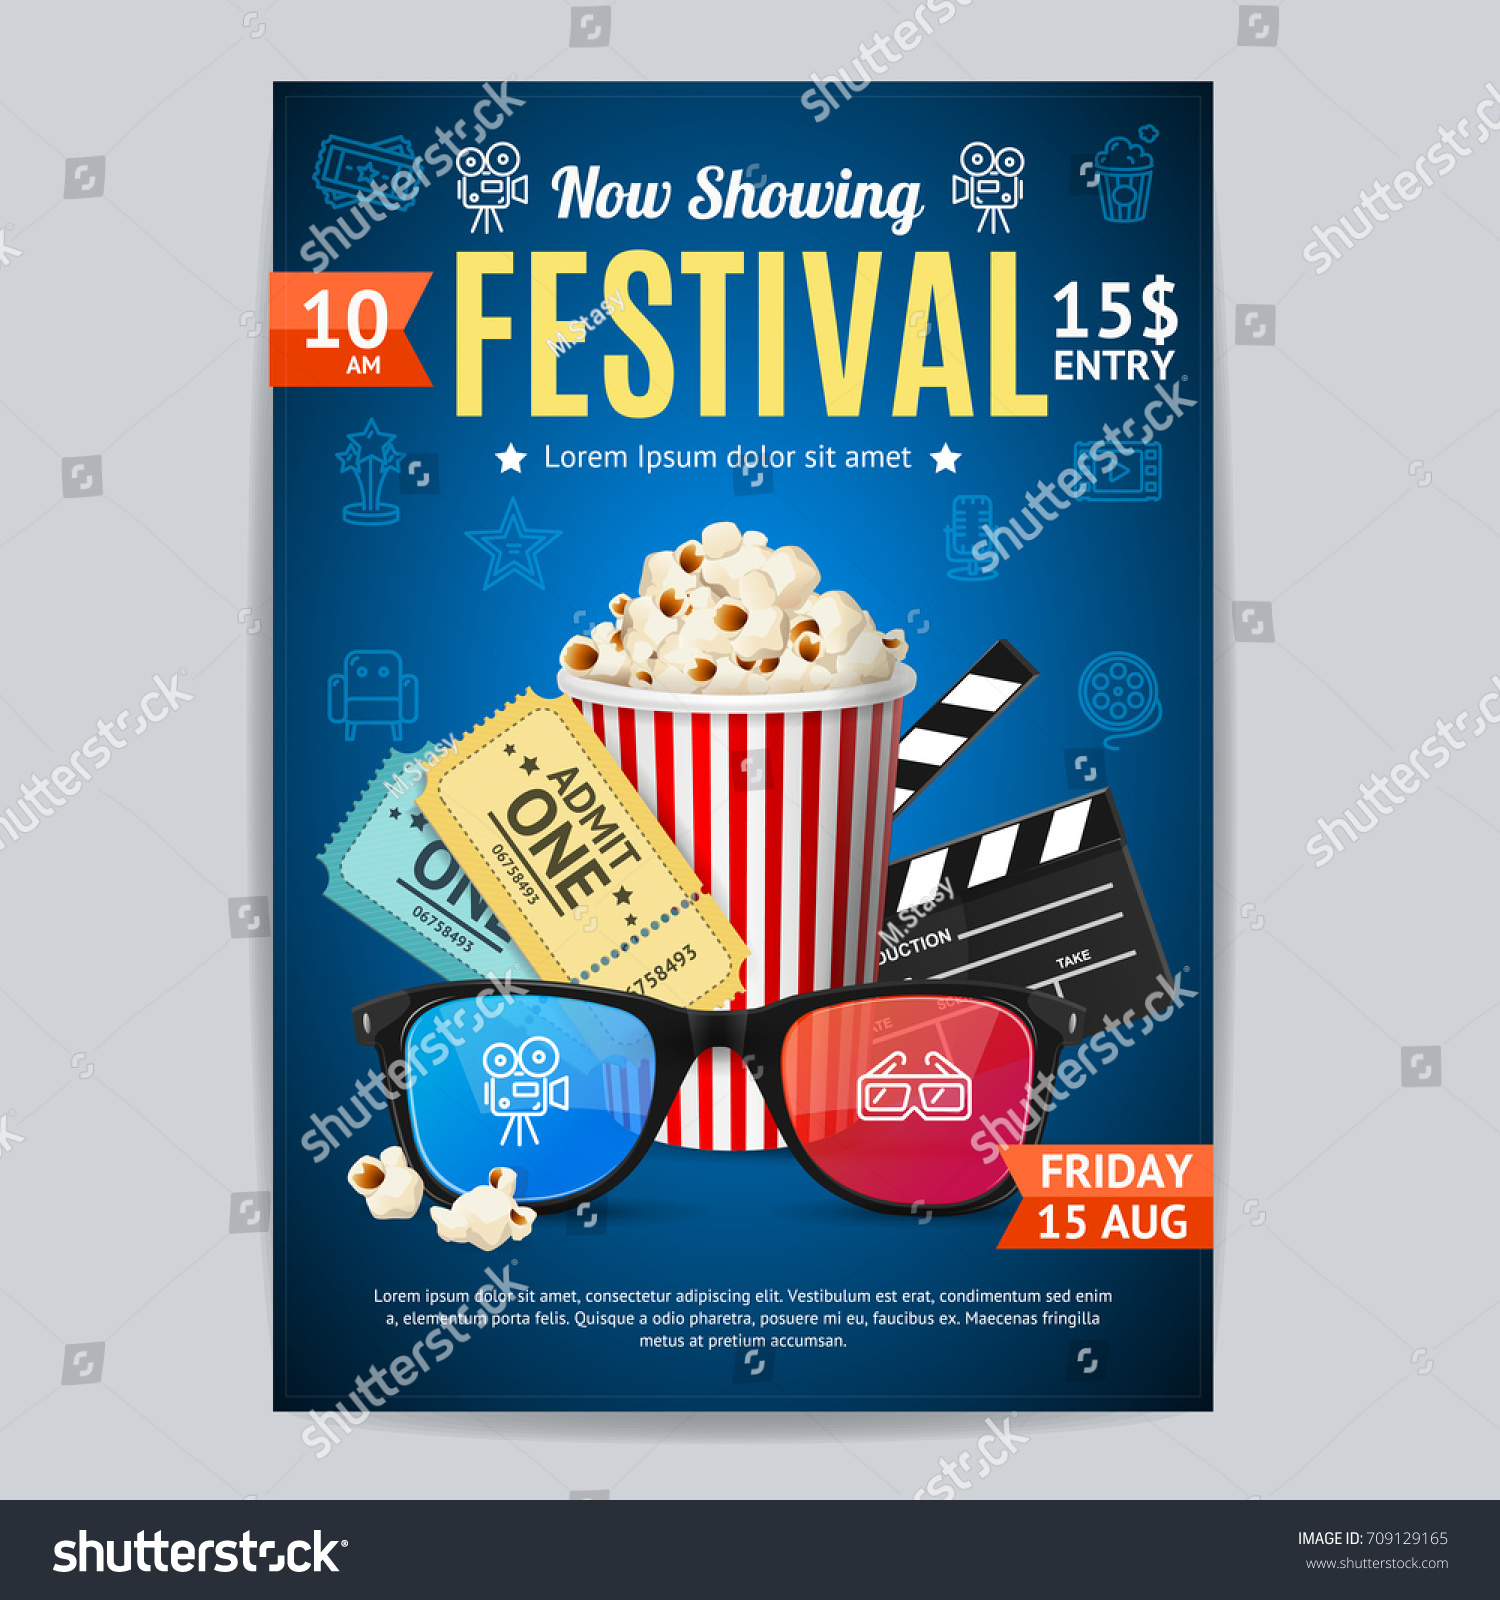 Cinema Movie Festival Poster Card Template Image Vectorielle De